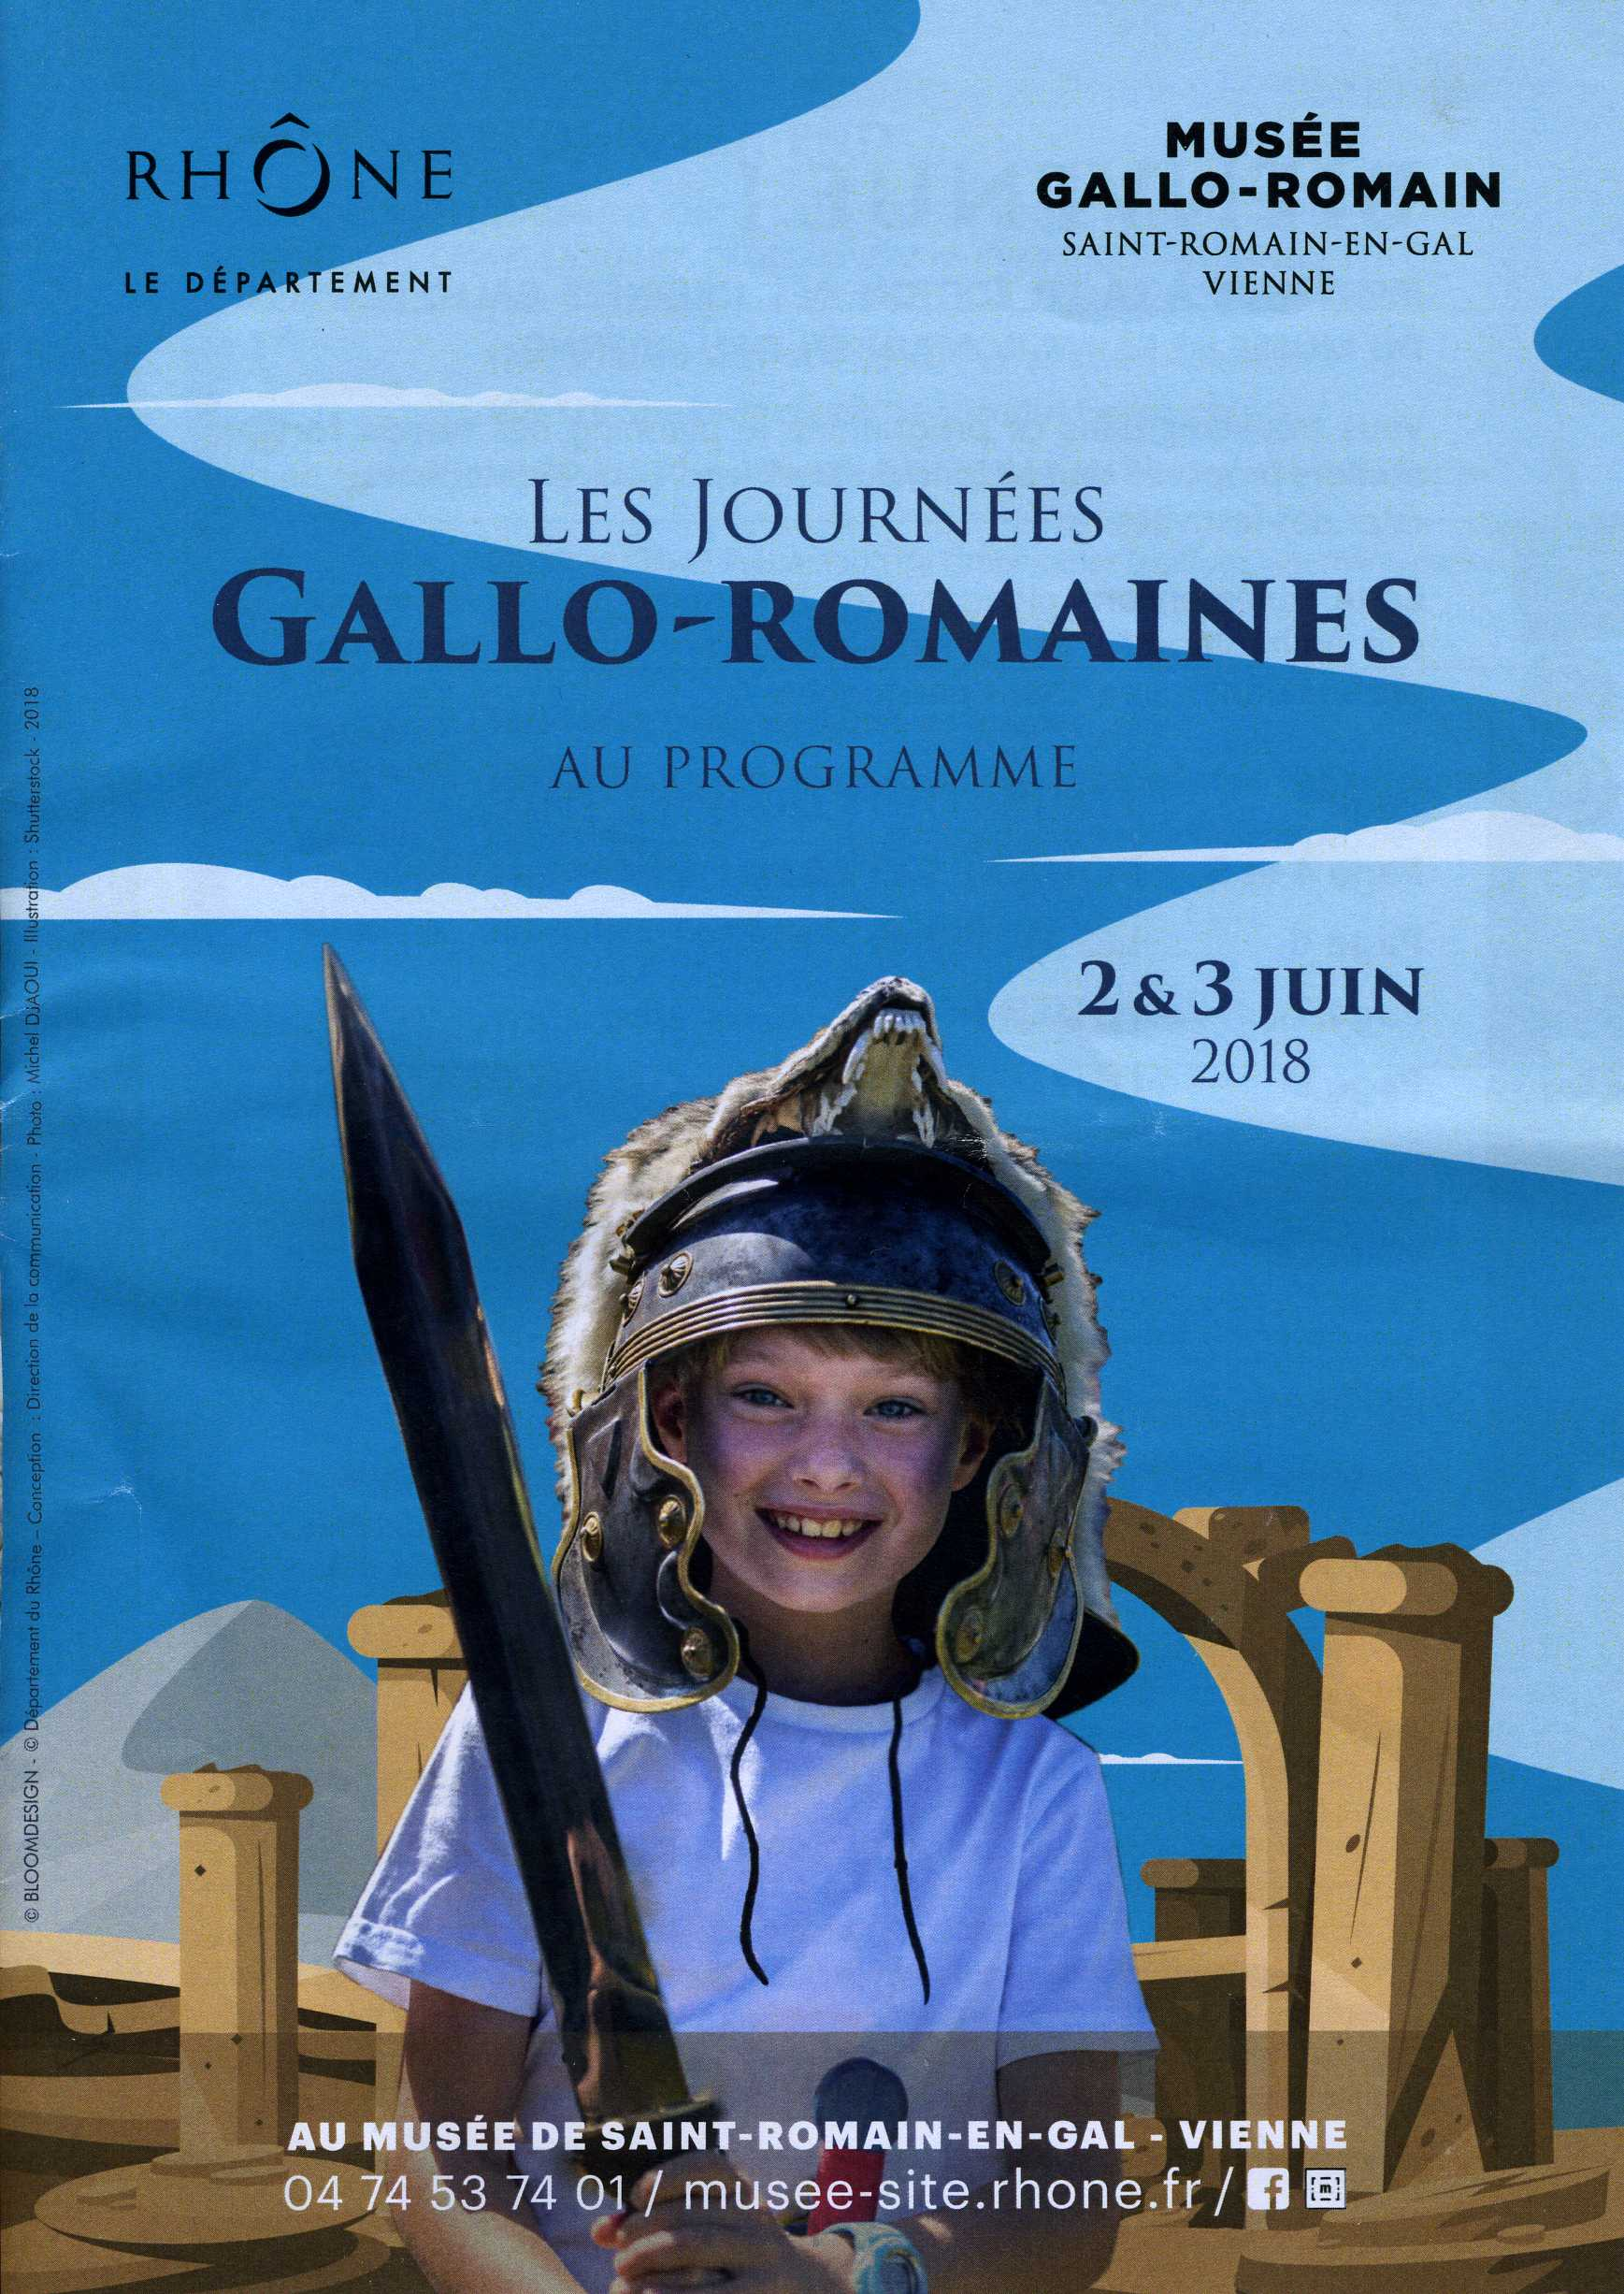 DSC_0723_Journees_gallo-romaines.jpg